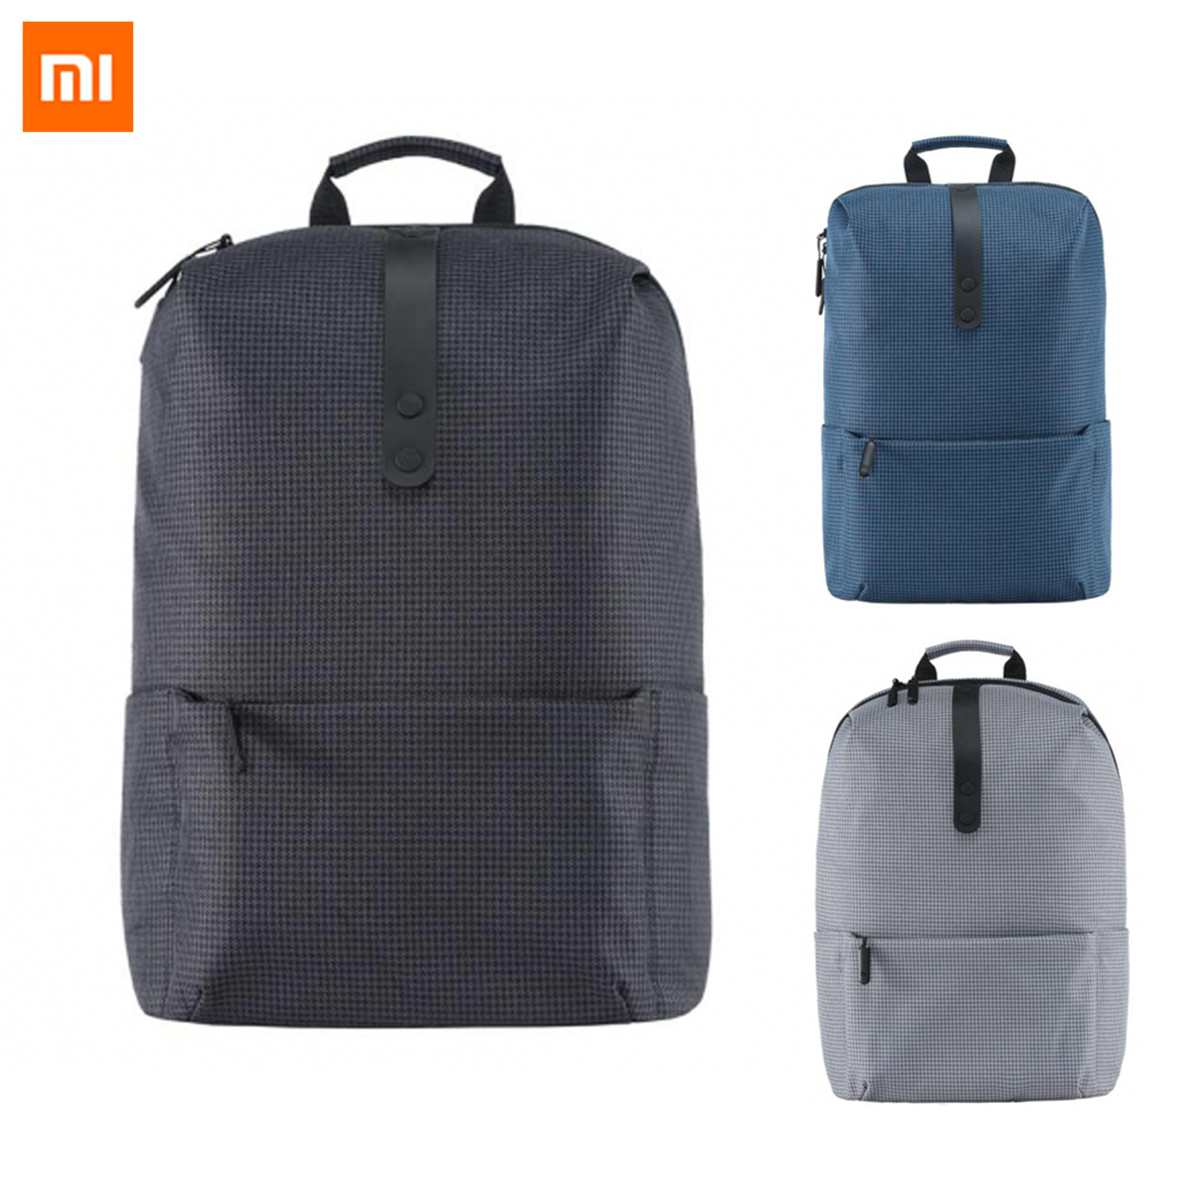 Xiaomi College Style <font><b>Backpack</b></font> 15.6 Inch Laptop Computer Bags Large Capacity School <font><b>Backpacks</b></font> for Women Men Boy Girl image